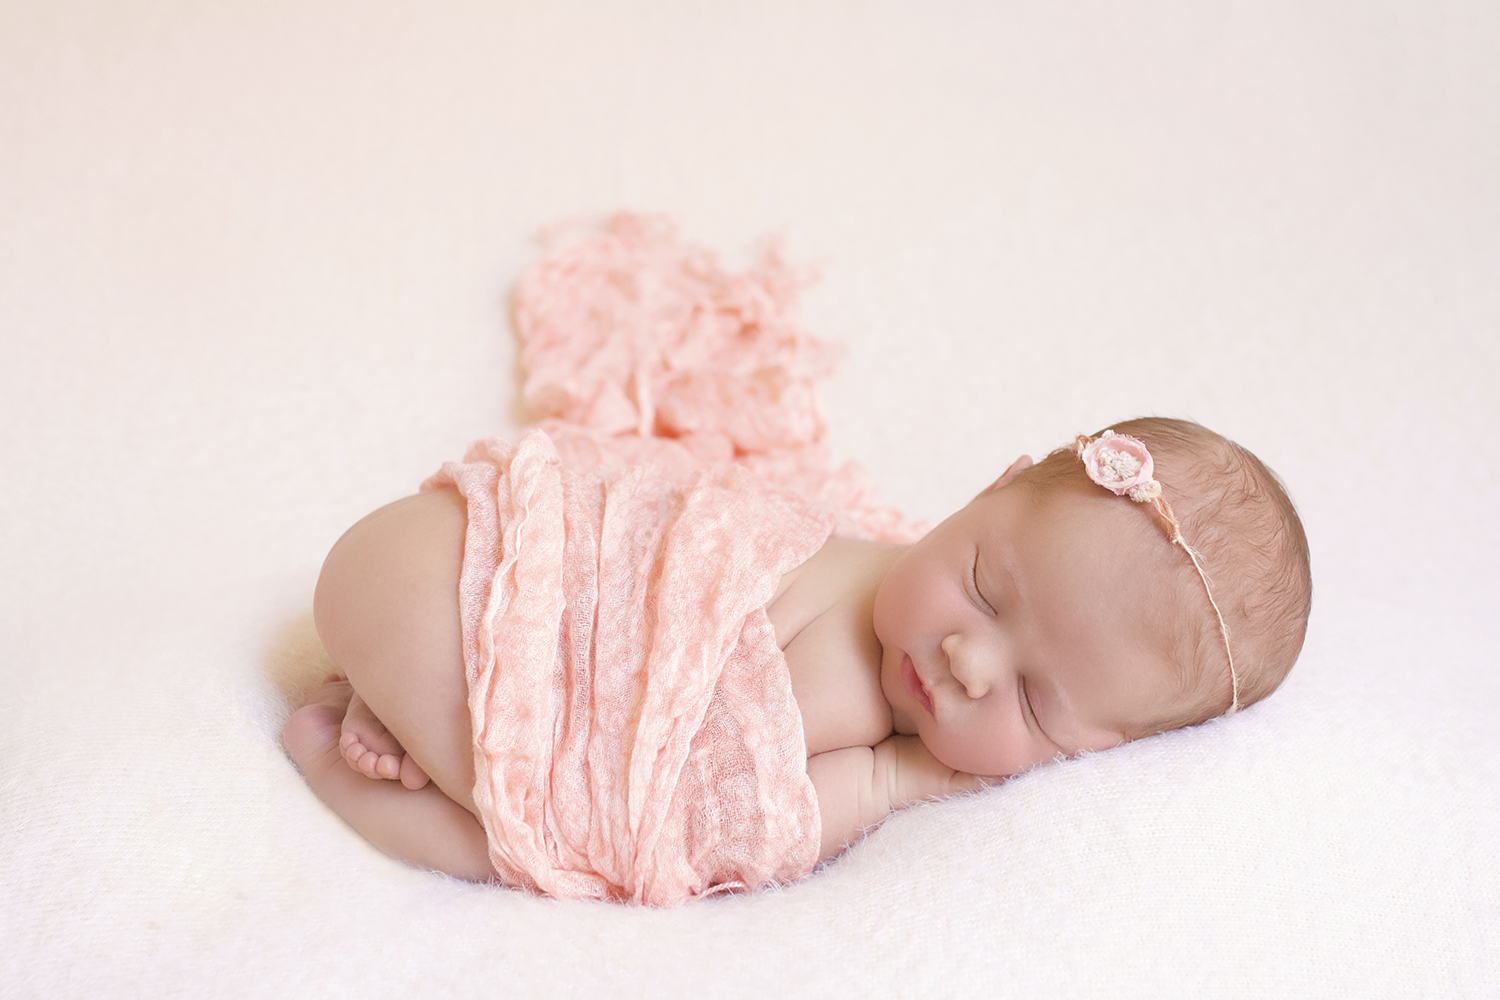 Newborn baby girl sleeping on cream blanket with peach wrap and tieback or knit bonnet